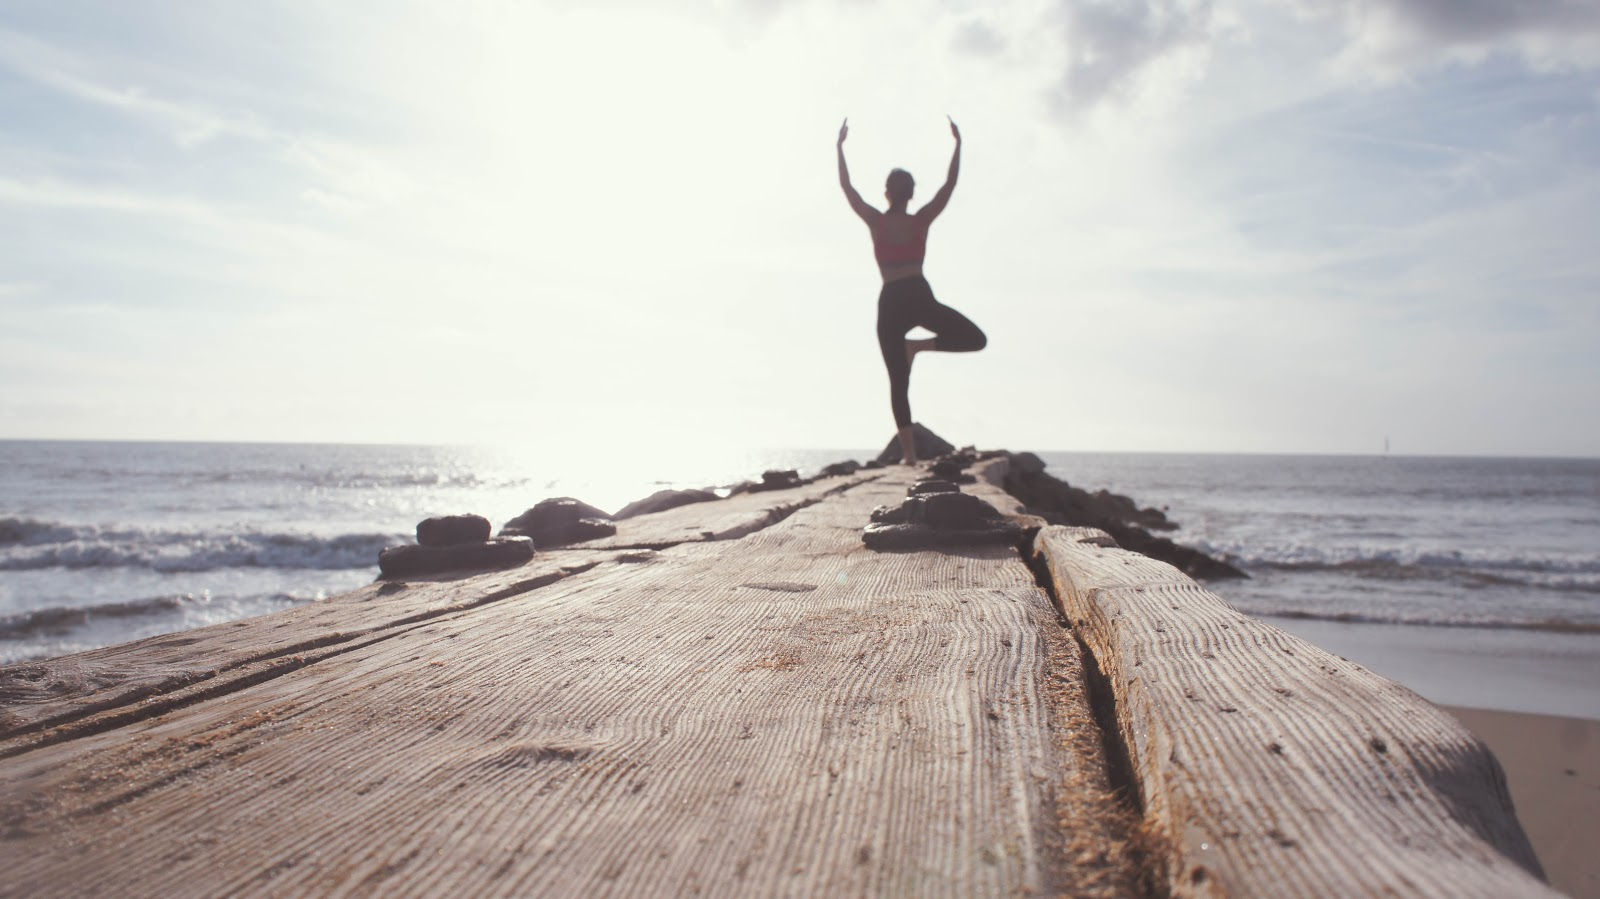 Yoga WILL improve your posture and alignment -